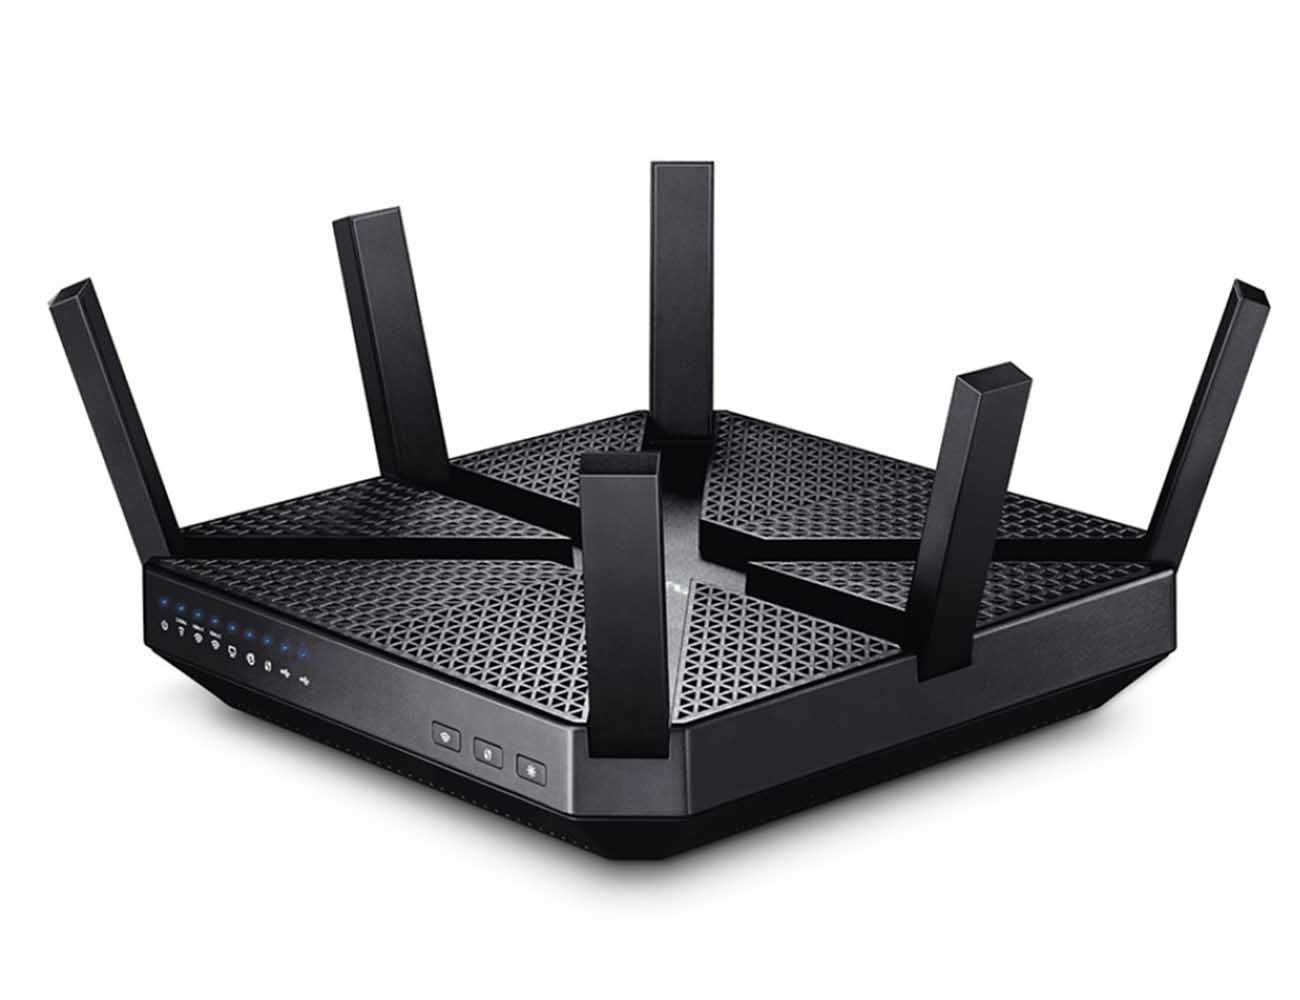 Archer+C3200+%26%238211%3B+Tri-Band+Wireless+Gigabit+Wi-Fi+Router+By+TP-LINK